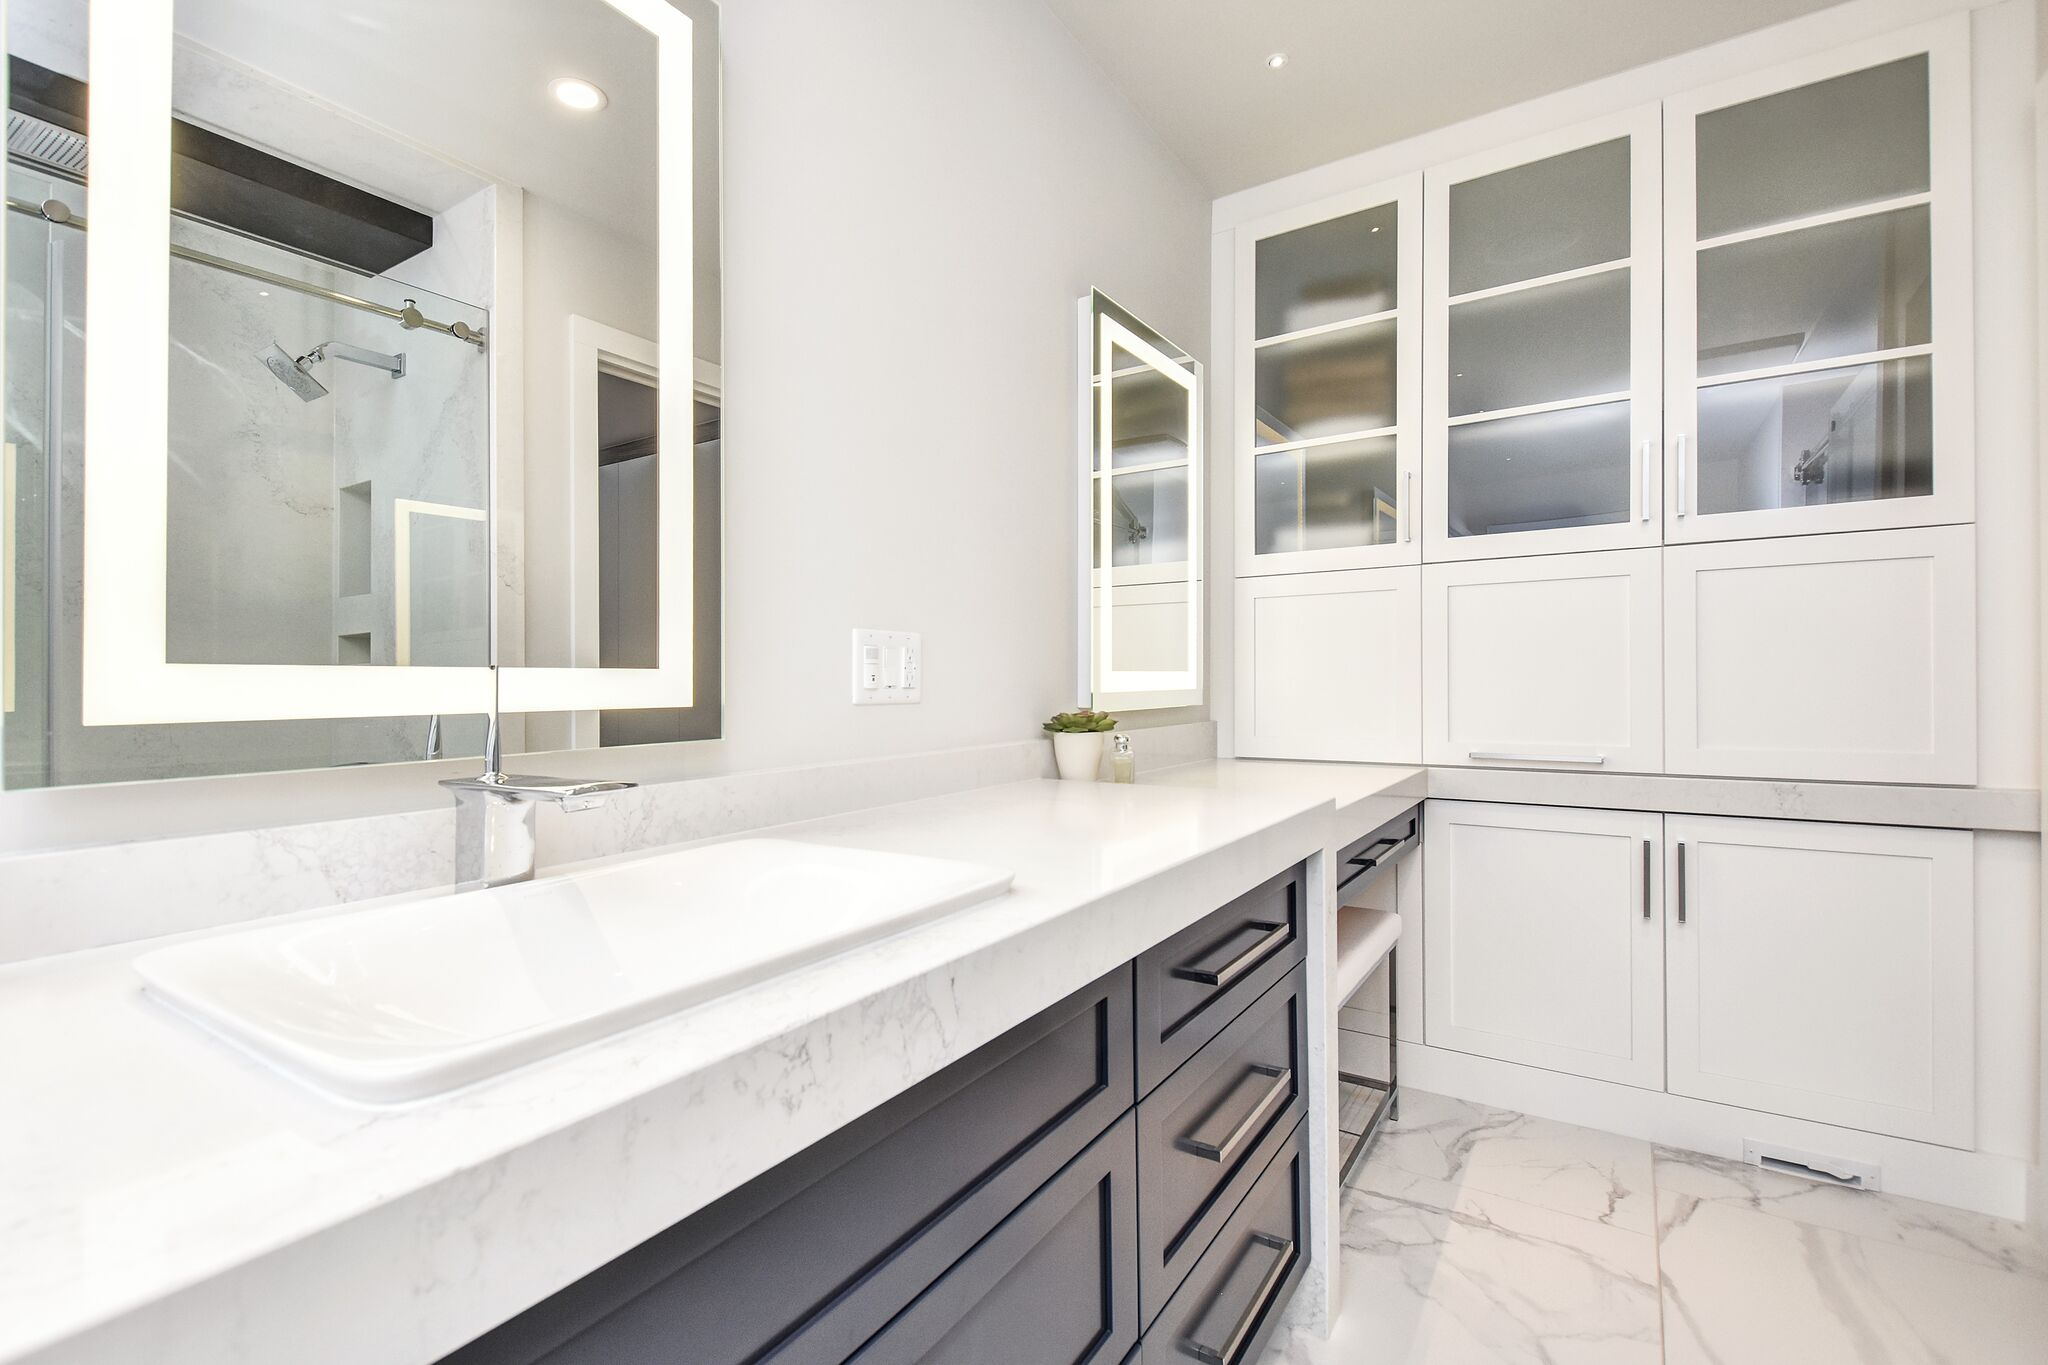 Modern master bathroom, LED Lighted mirrors, storage cabinetry in bathroom